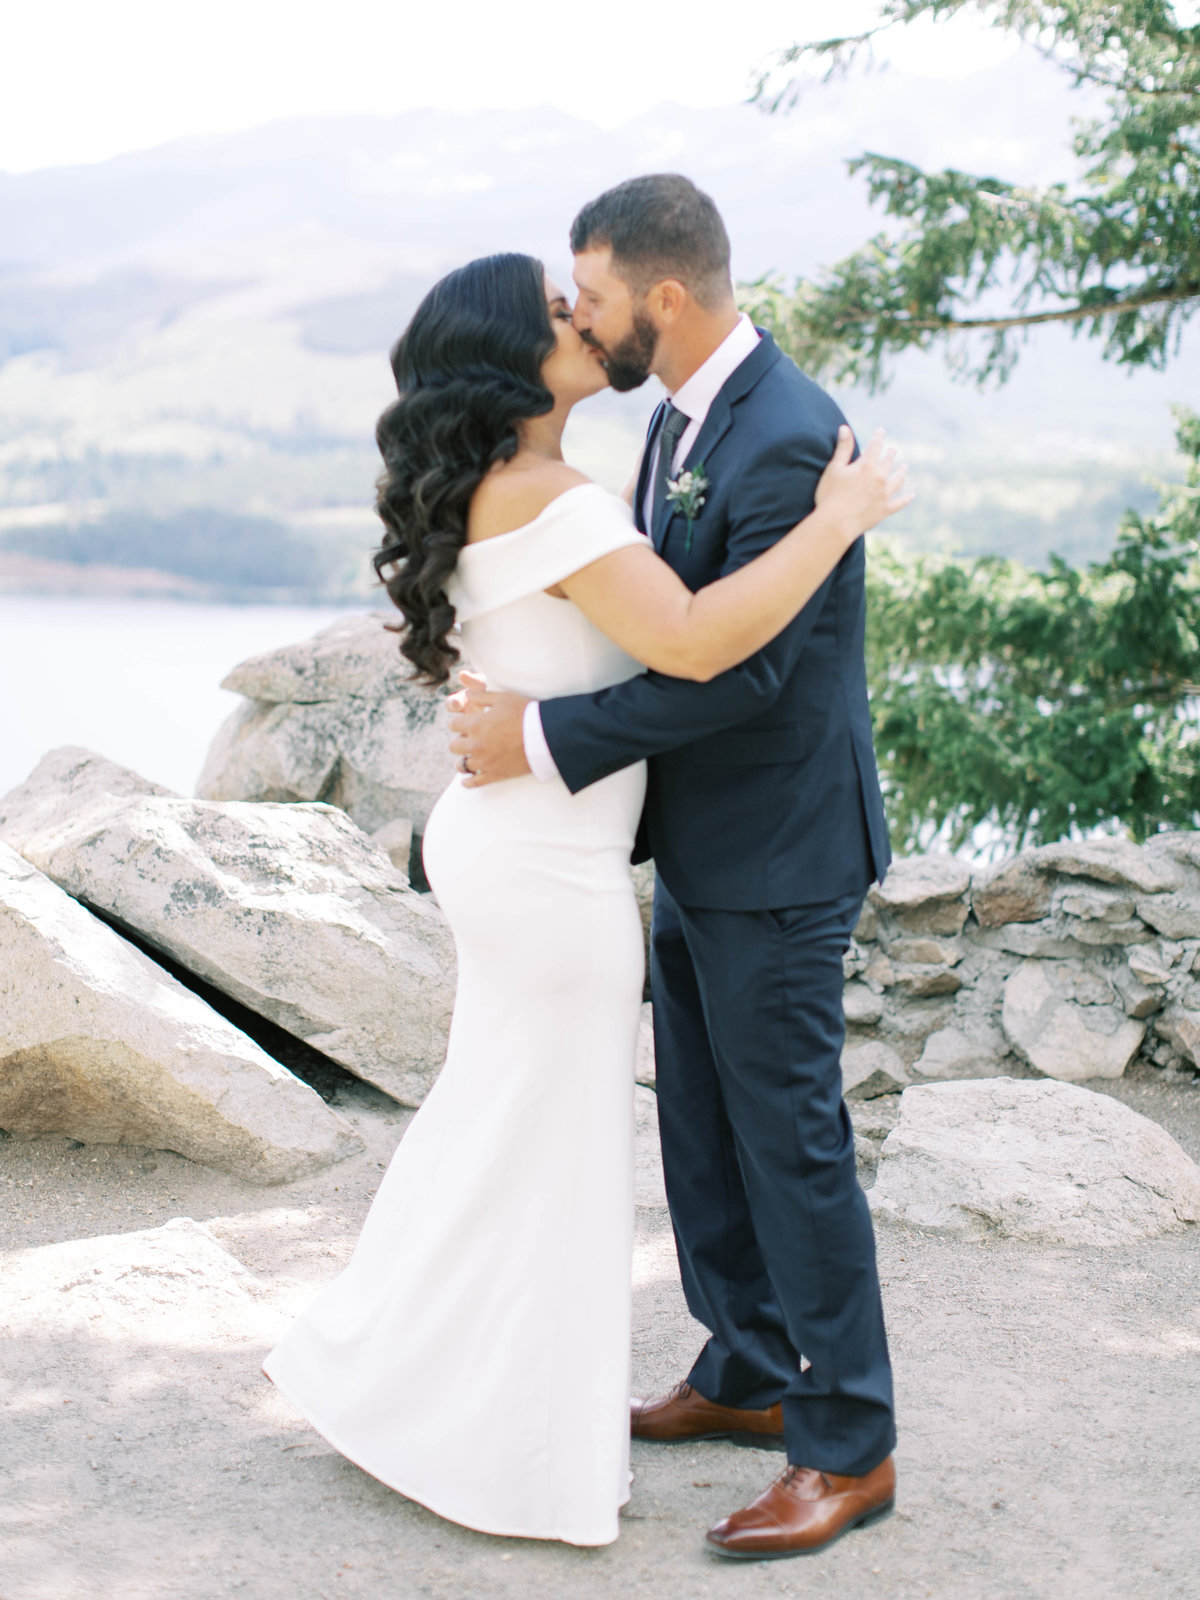 First kiss for bride and groom at their ceremony in Breckenridge, Colorado